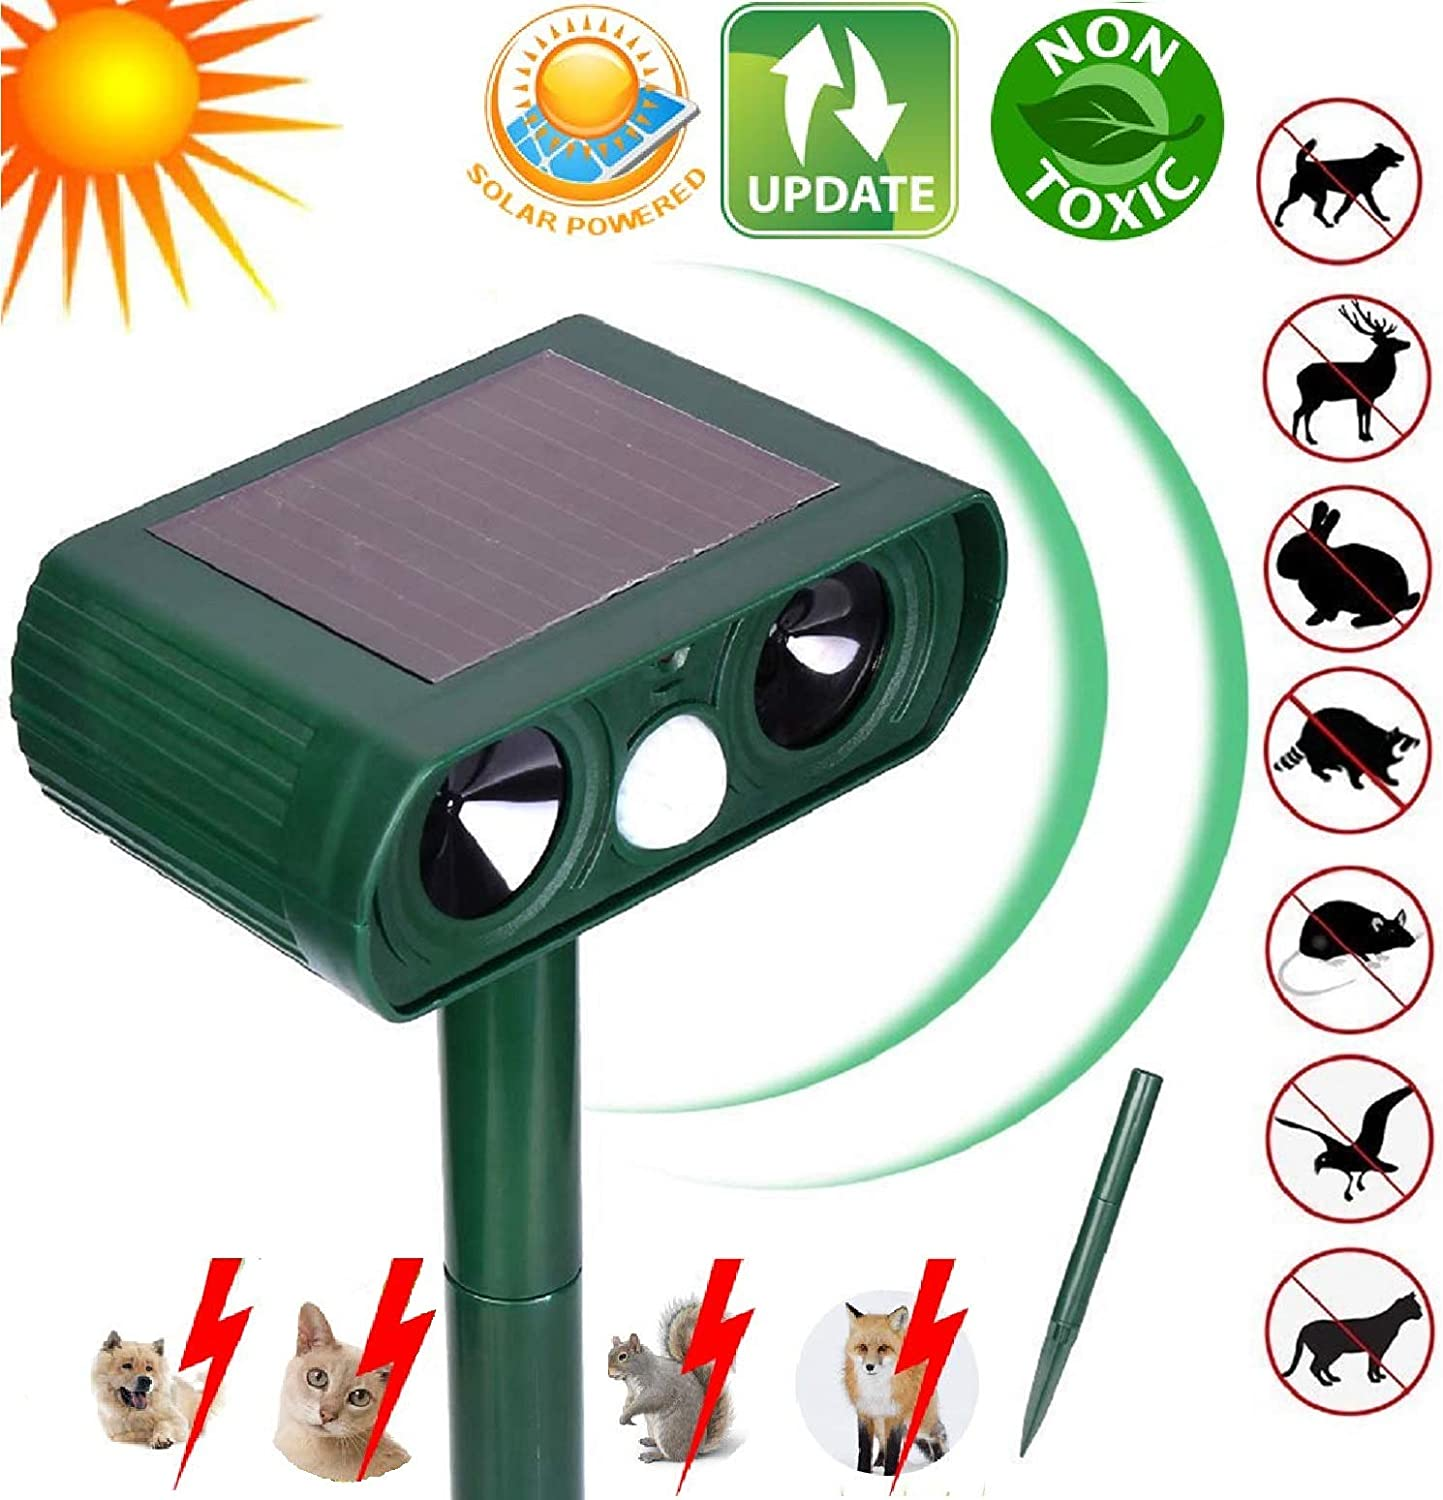 N3 ZELEK Cat Repellent Solar Battery Ultrasonic Pest Repeller Cat Scarer Fox Deterrent NEWEST UPGRADED 2020 Cat Deterrent Garden Dog Bed Garden Fox Repellent Cat Bed Bird Scarer